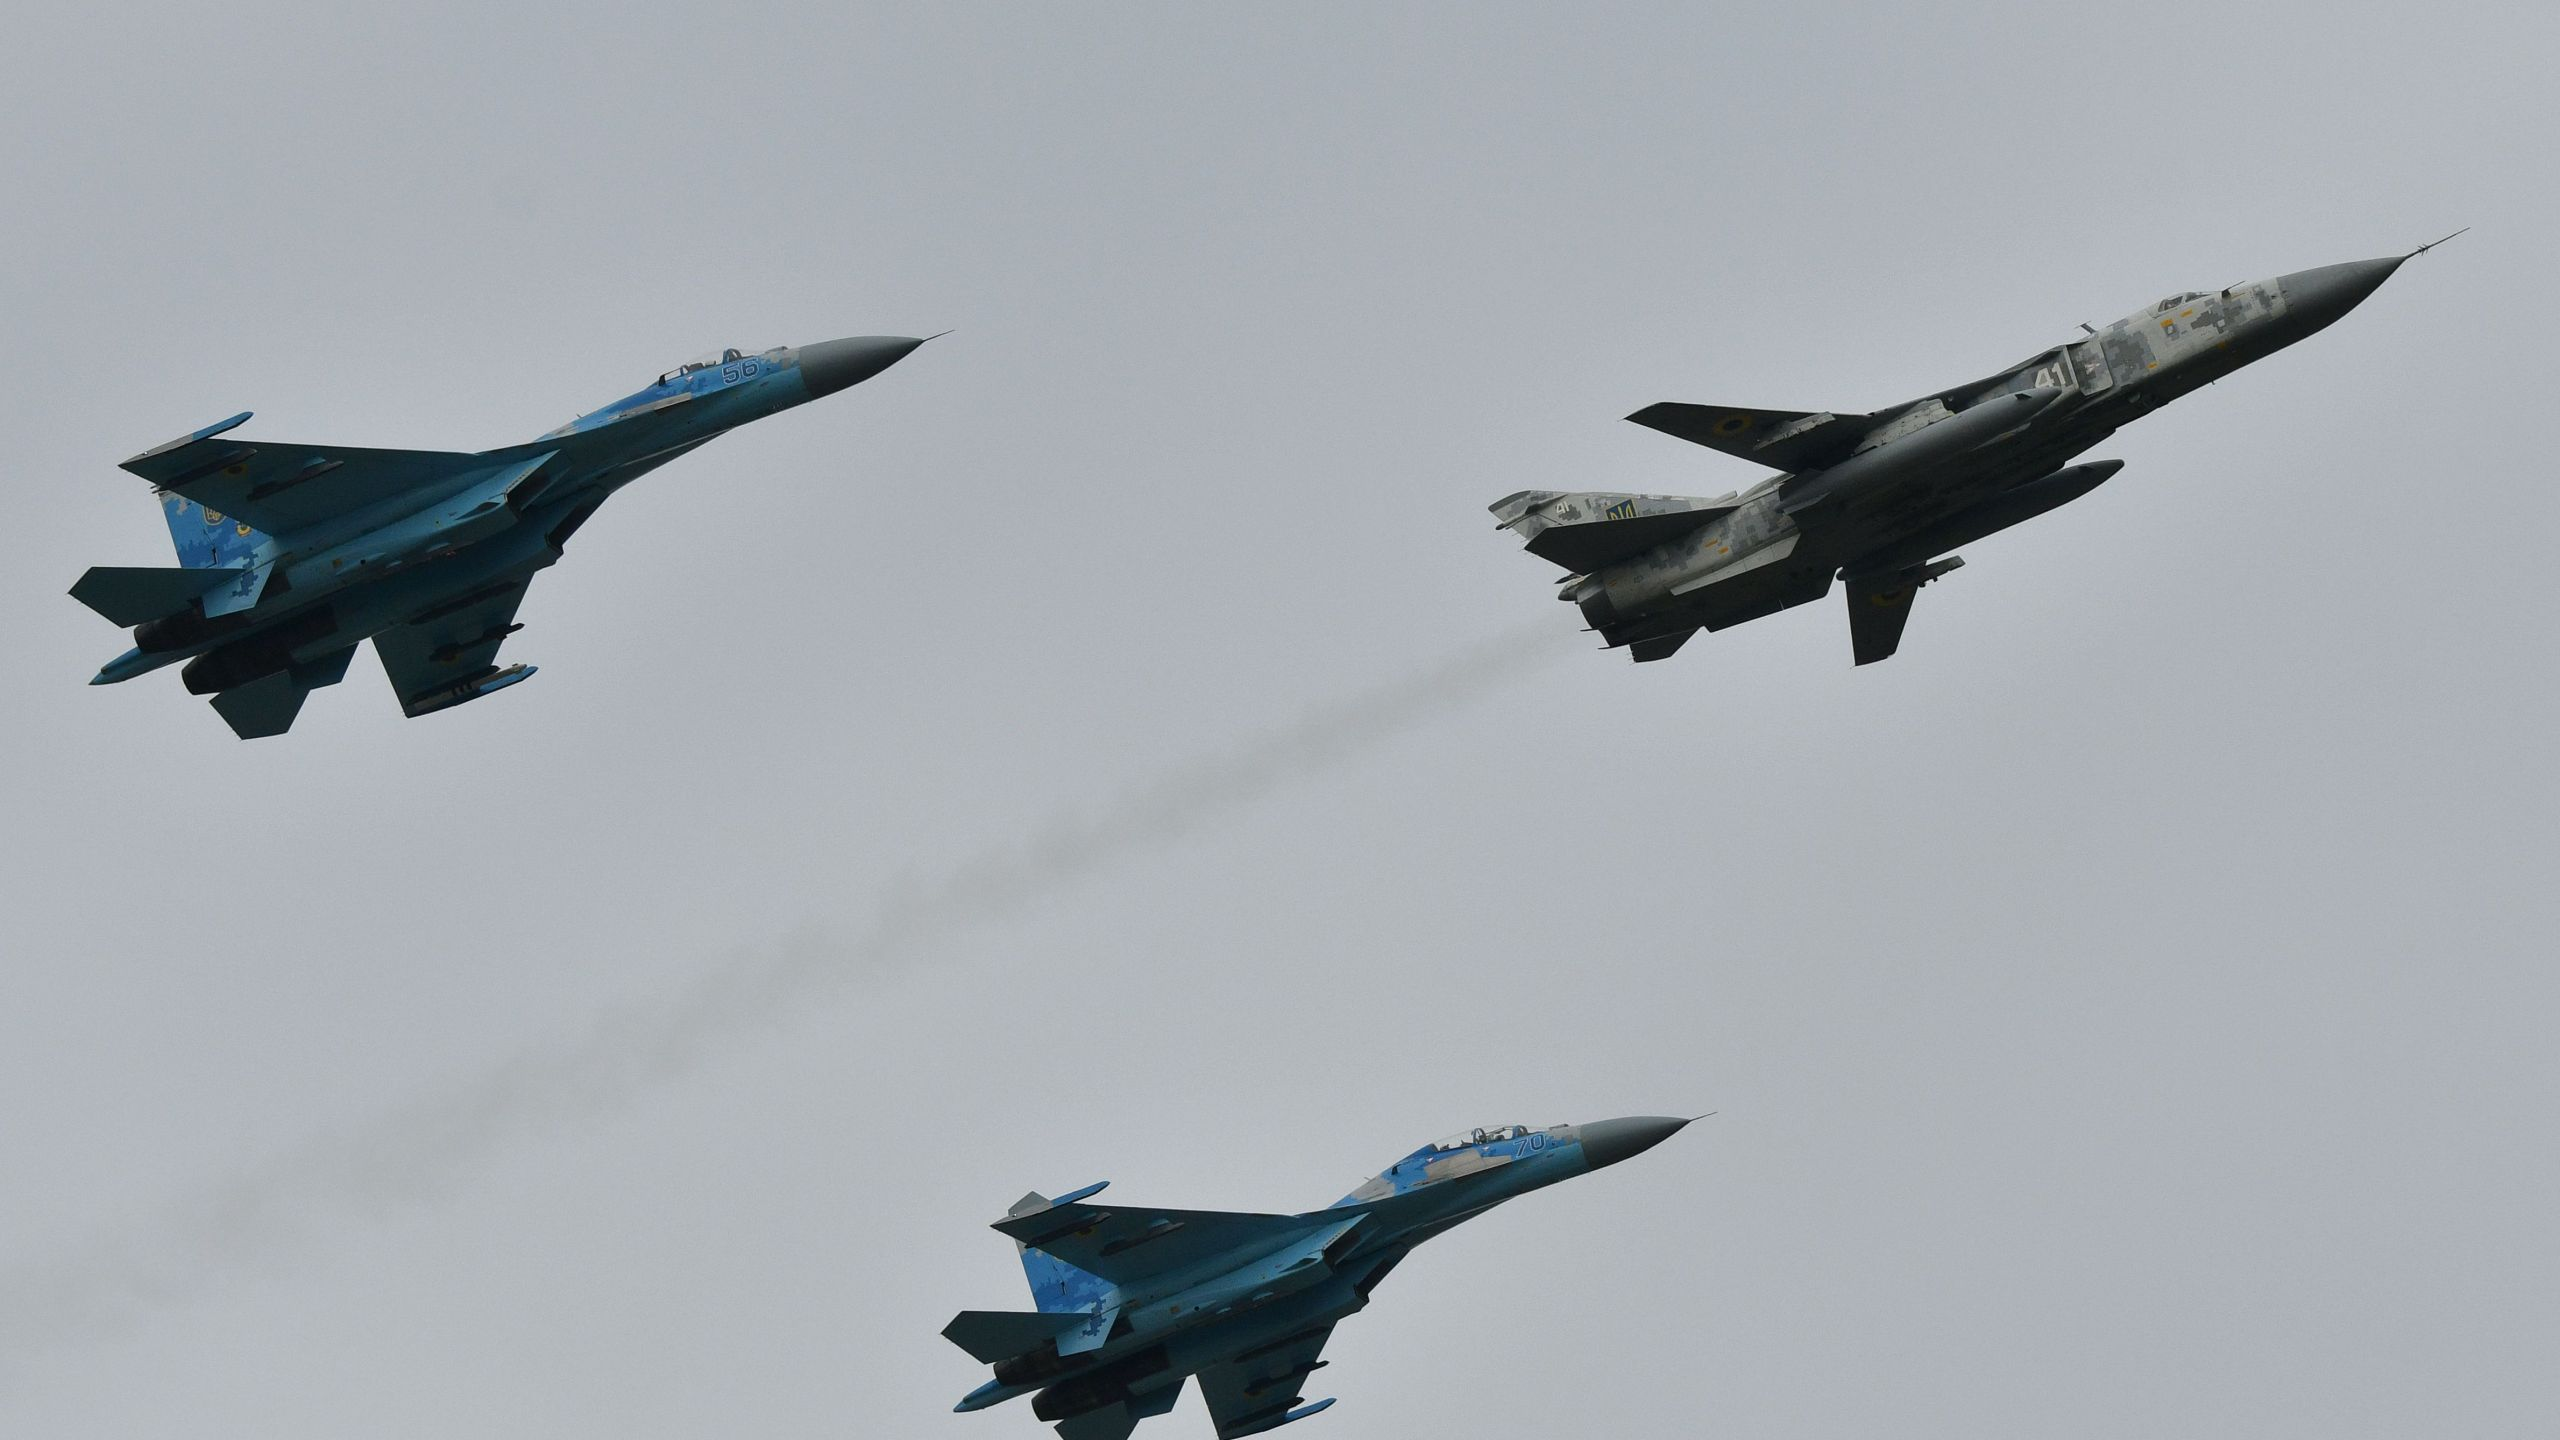 Air force exercises by the United States and other NATO countries take place at the Starokostyantyniv military airbase in Ukraine as part of Clear Sky-2018 on Oct.12, 2018. (Credit: GENYA SAVILOV/AFP/Getty Images)